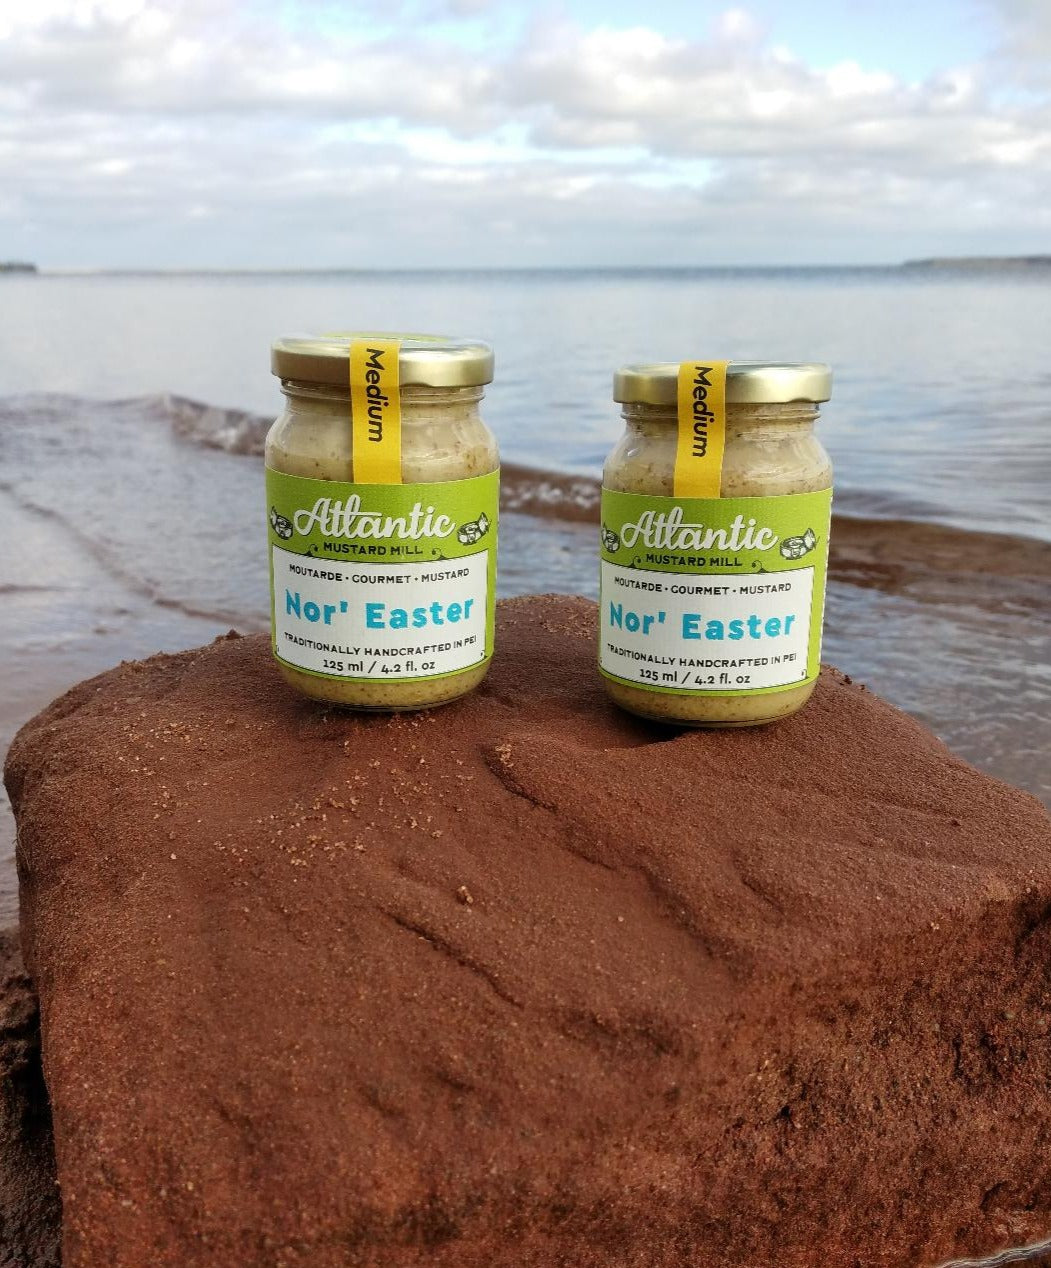 Two jars of mustard on a big stone on the beach with the sea in the background